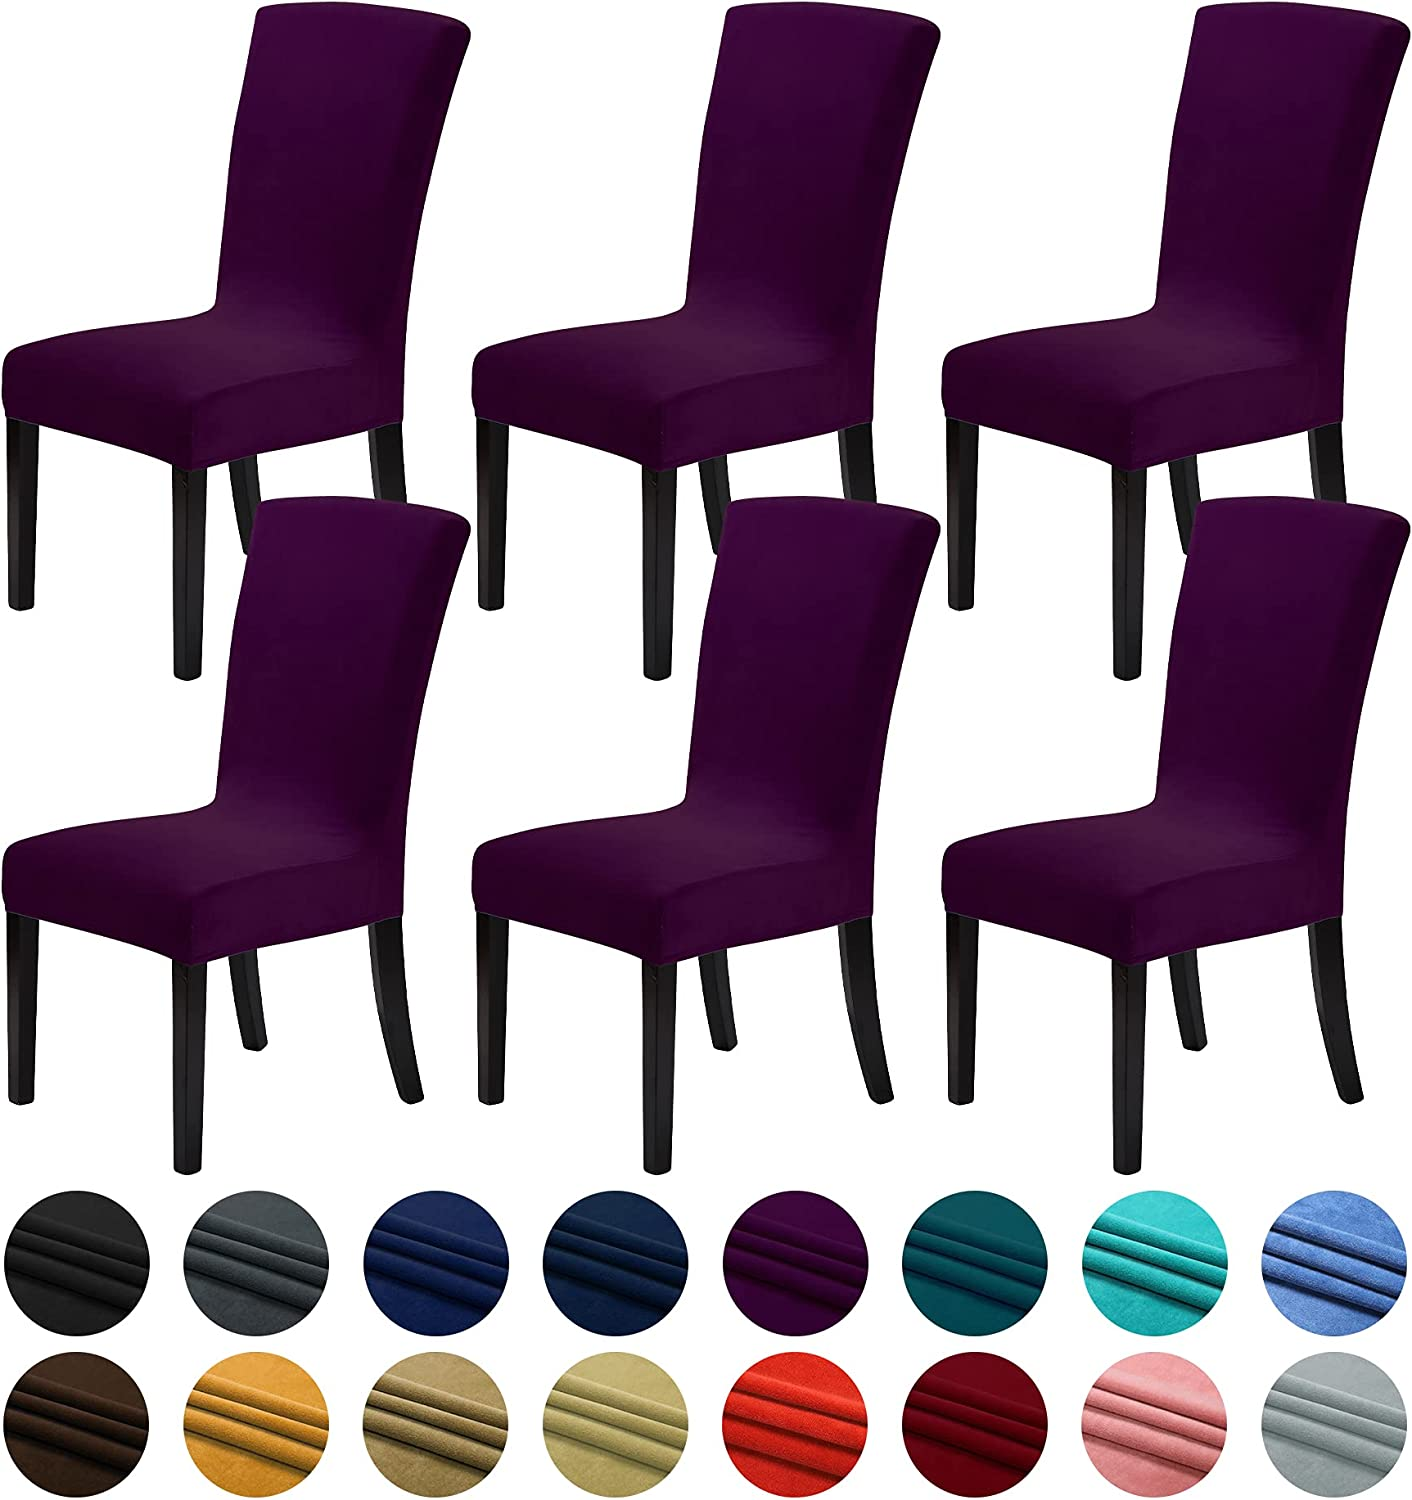 Howhic Velvet Chair Covers for Dining Room Set of 6, Stretchy Dining Chair Covers, Washable Kitchen Chair Slipcovers, Classy Decor for Home and Banquet (Eggplant, 6 Pack)